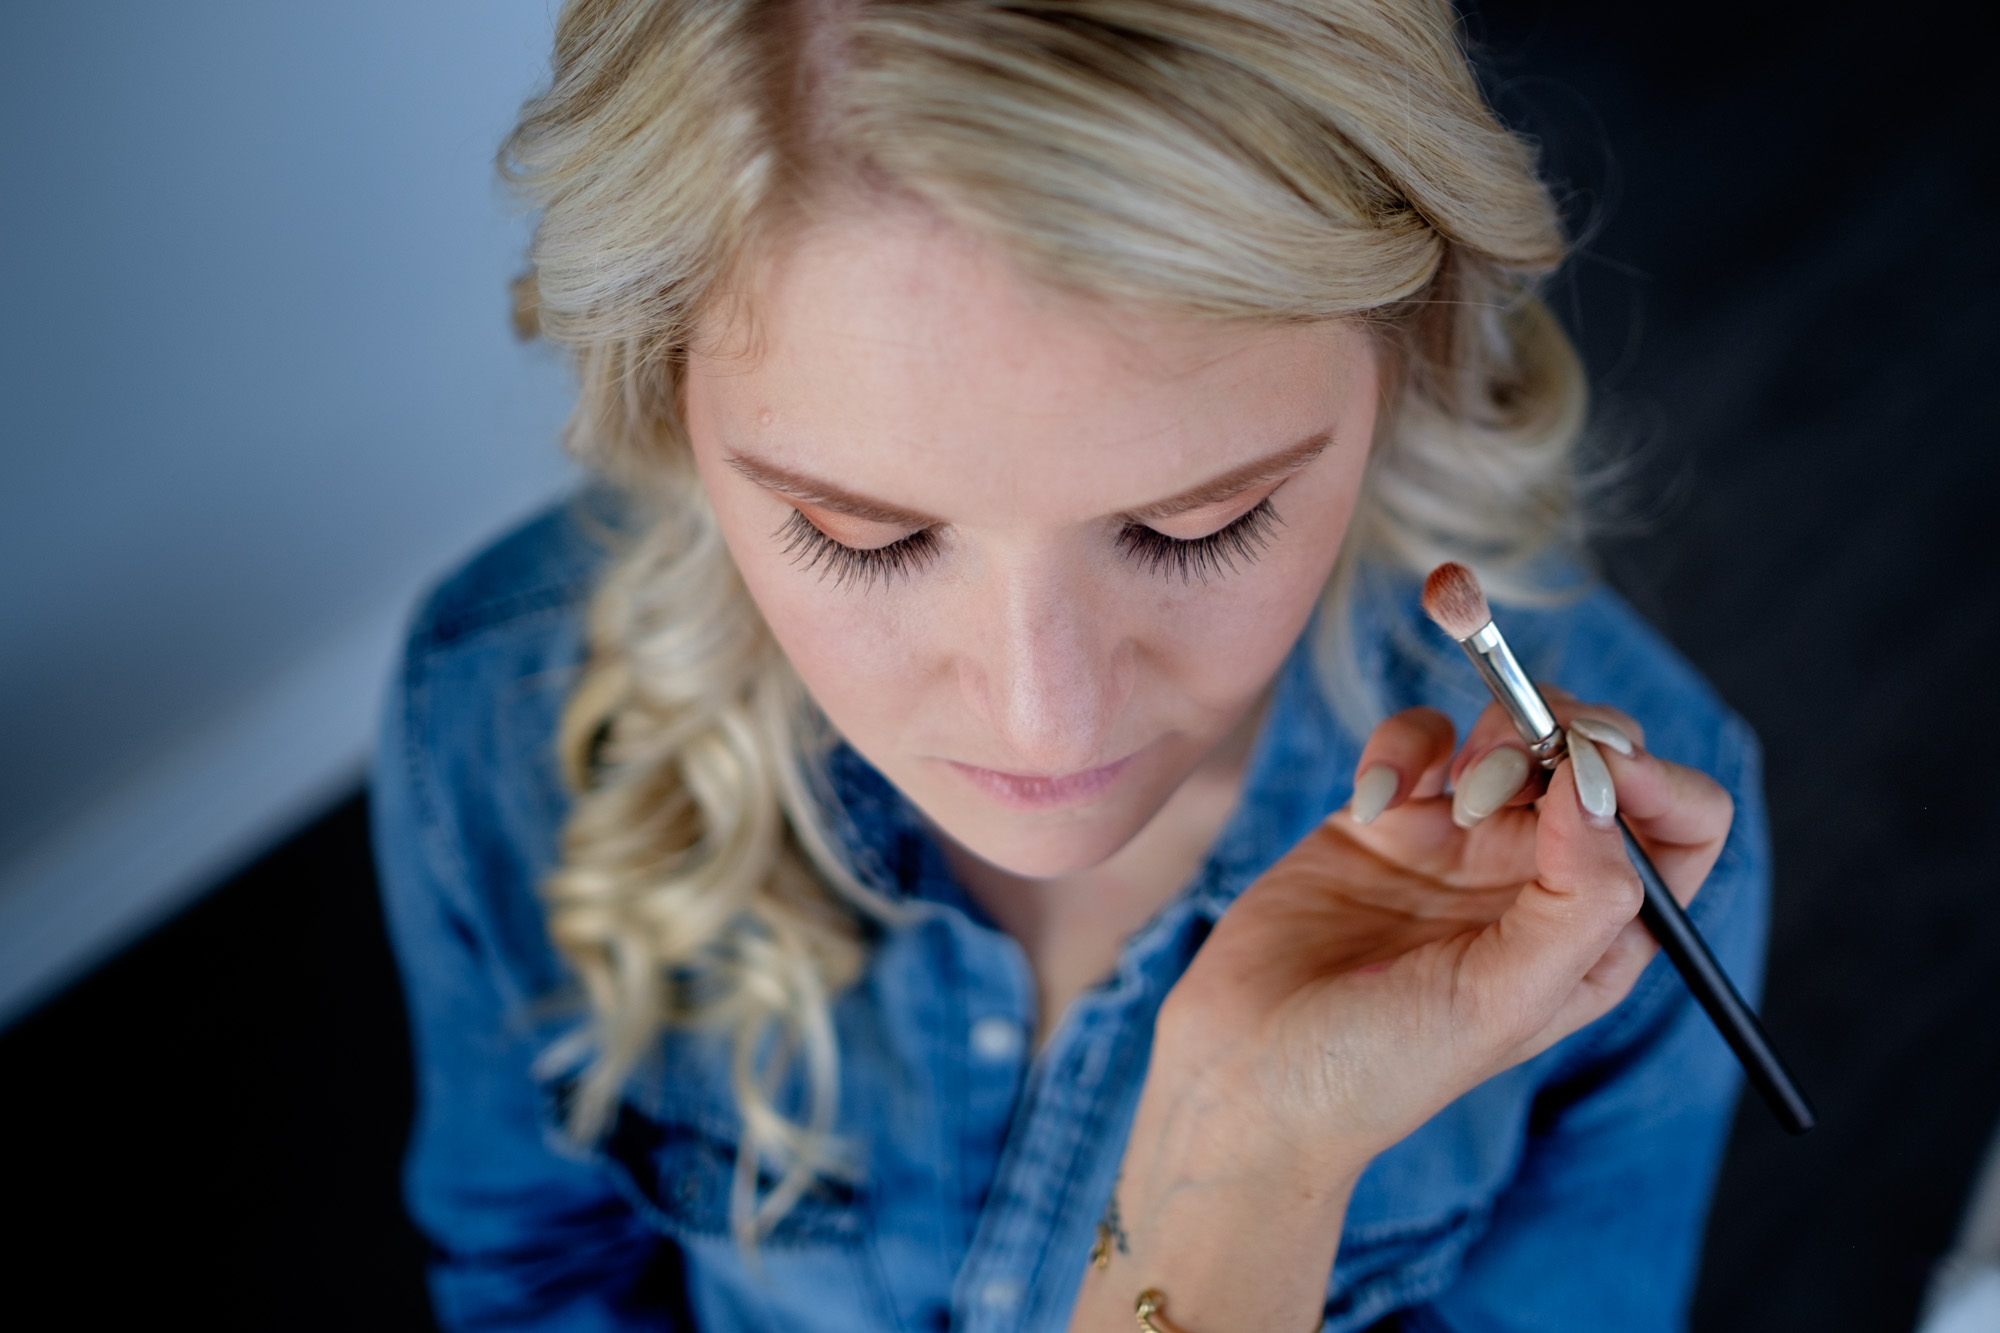 The bride has her make up applied before her wedding at Whistle Bear in Cambridge, Ontario.